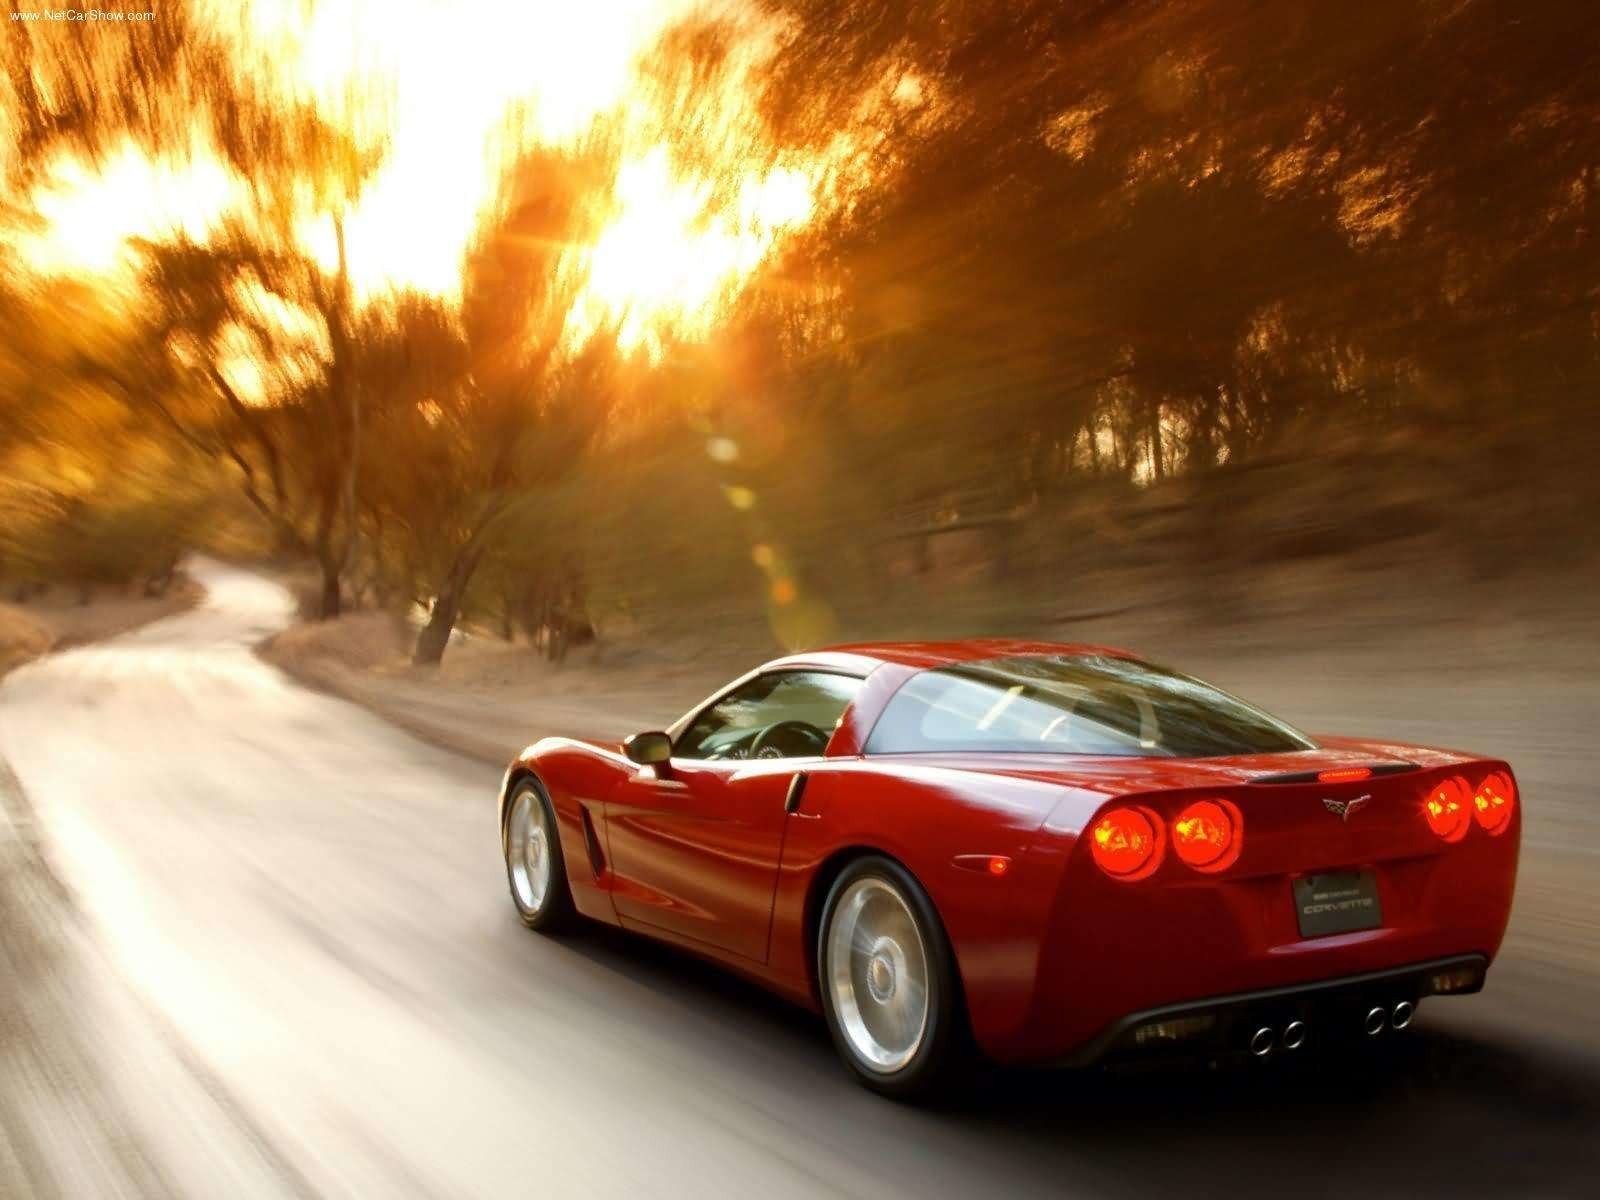 New 872 Chevrolet Corvette Hd Wallpapers Backgrounds On This Month